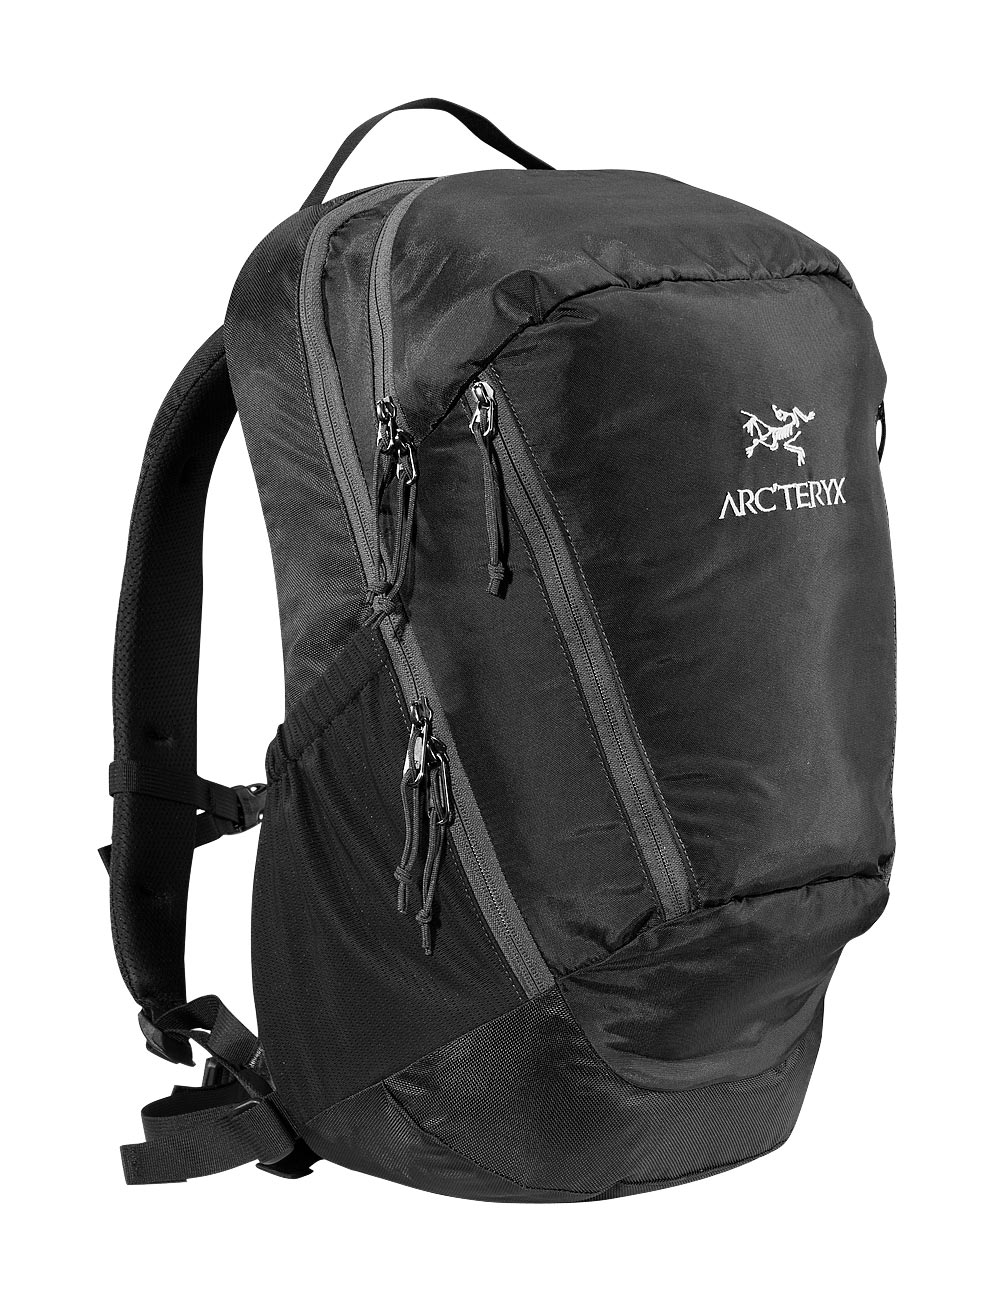 Arcteryx Black Mantis 26